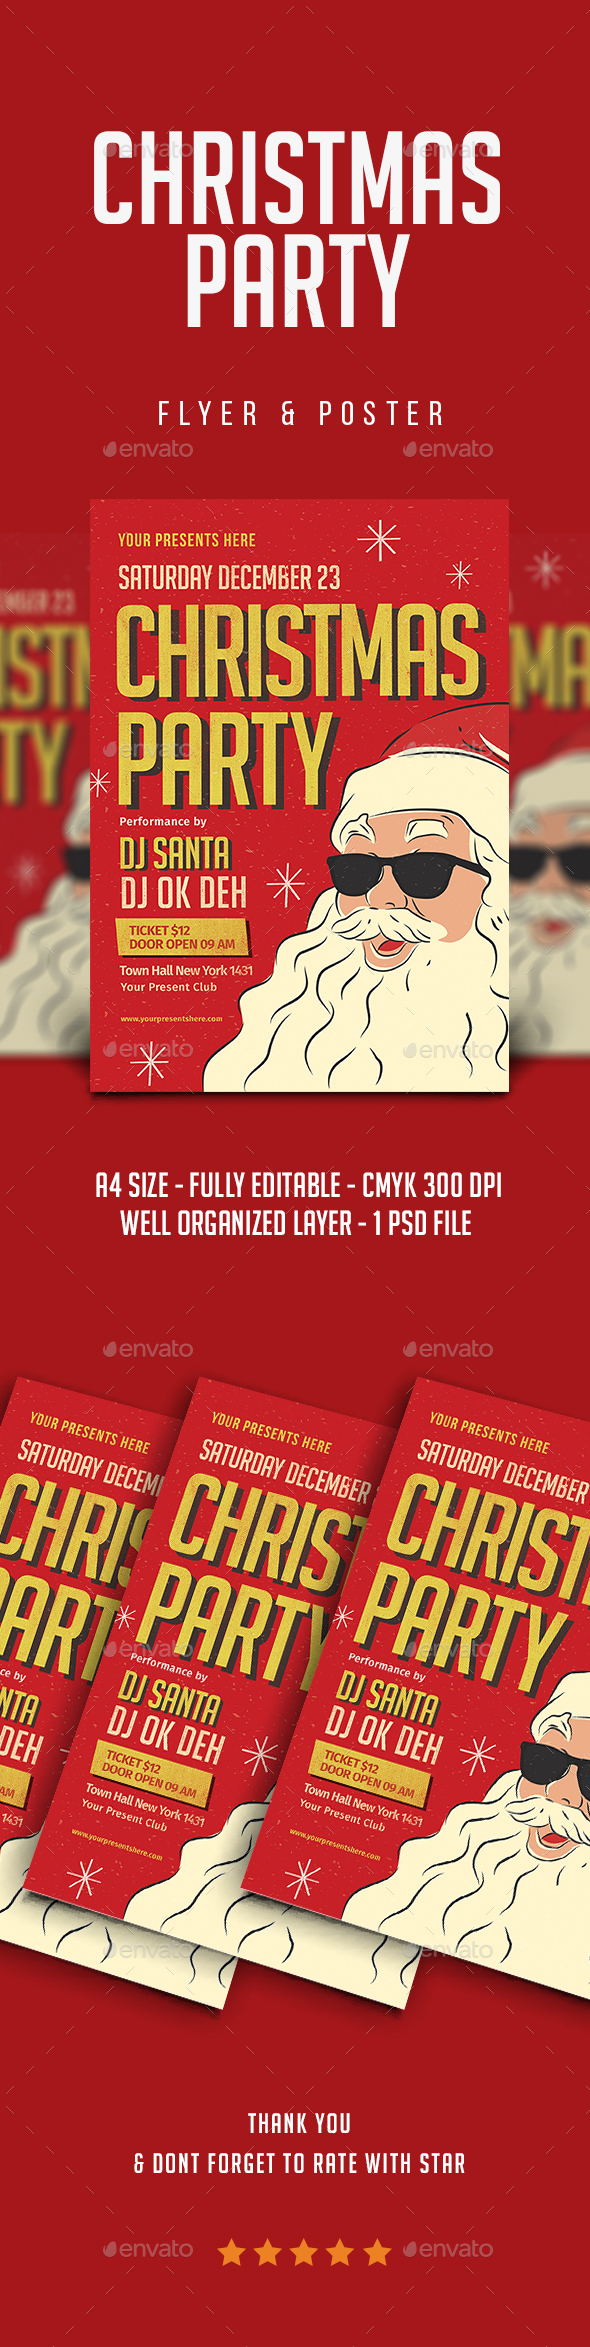 Christmas Party Flyer - Christmas Greeting Cards